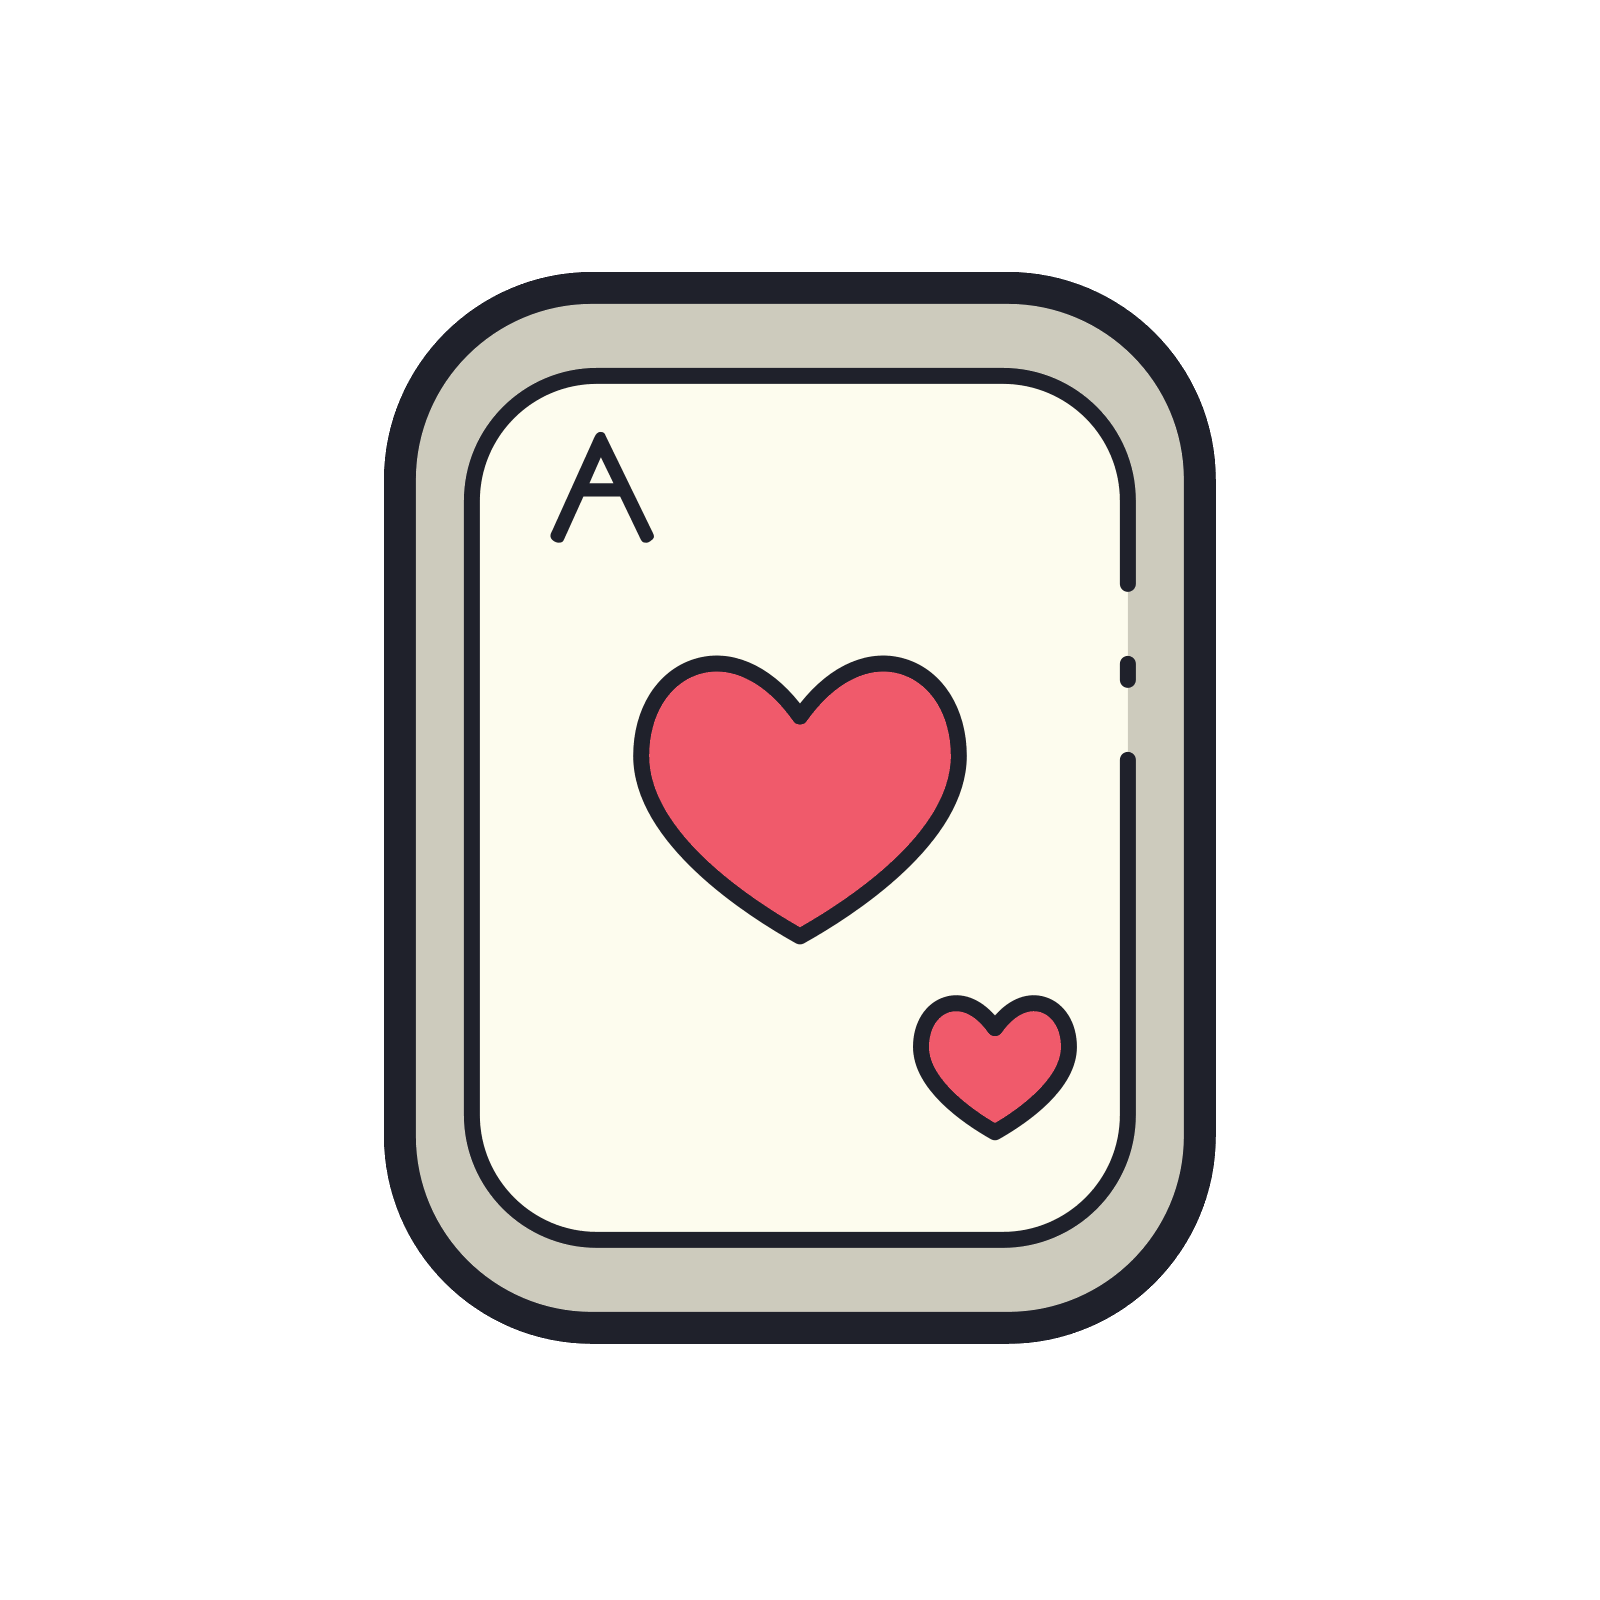 Ace of hearts png. Icon free download and